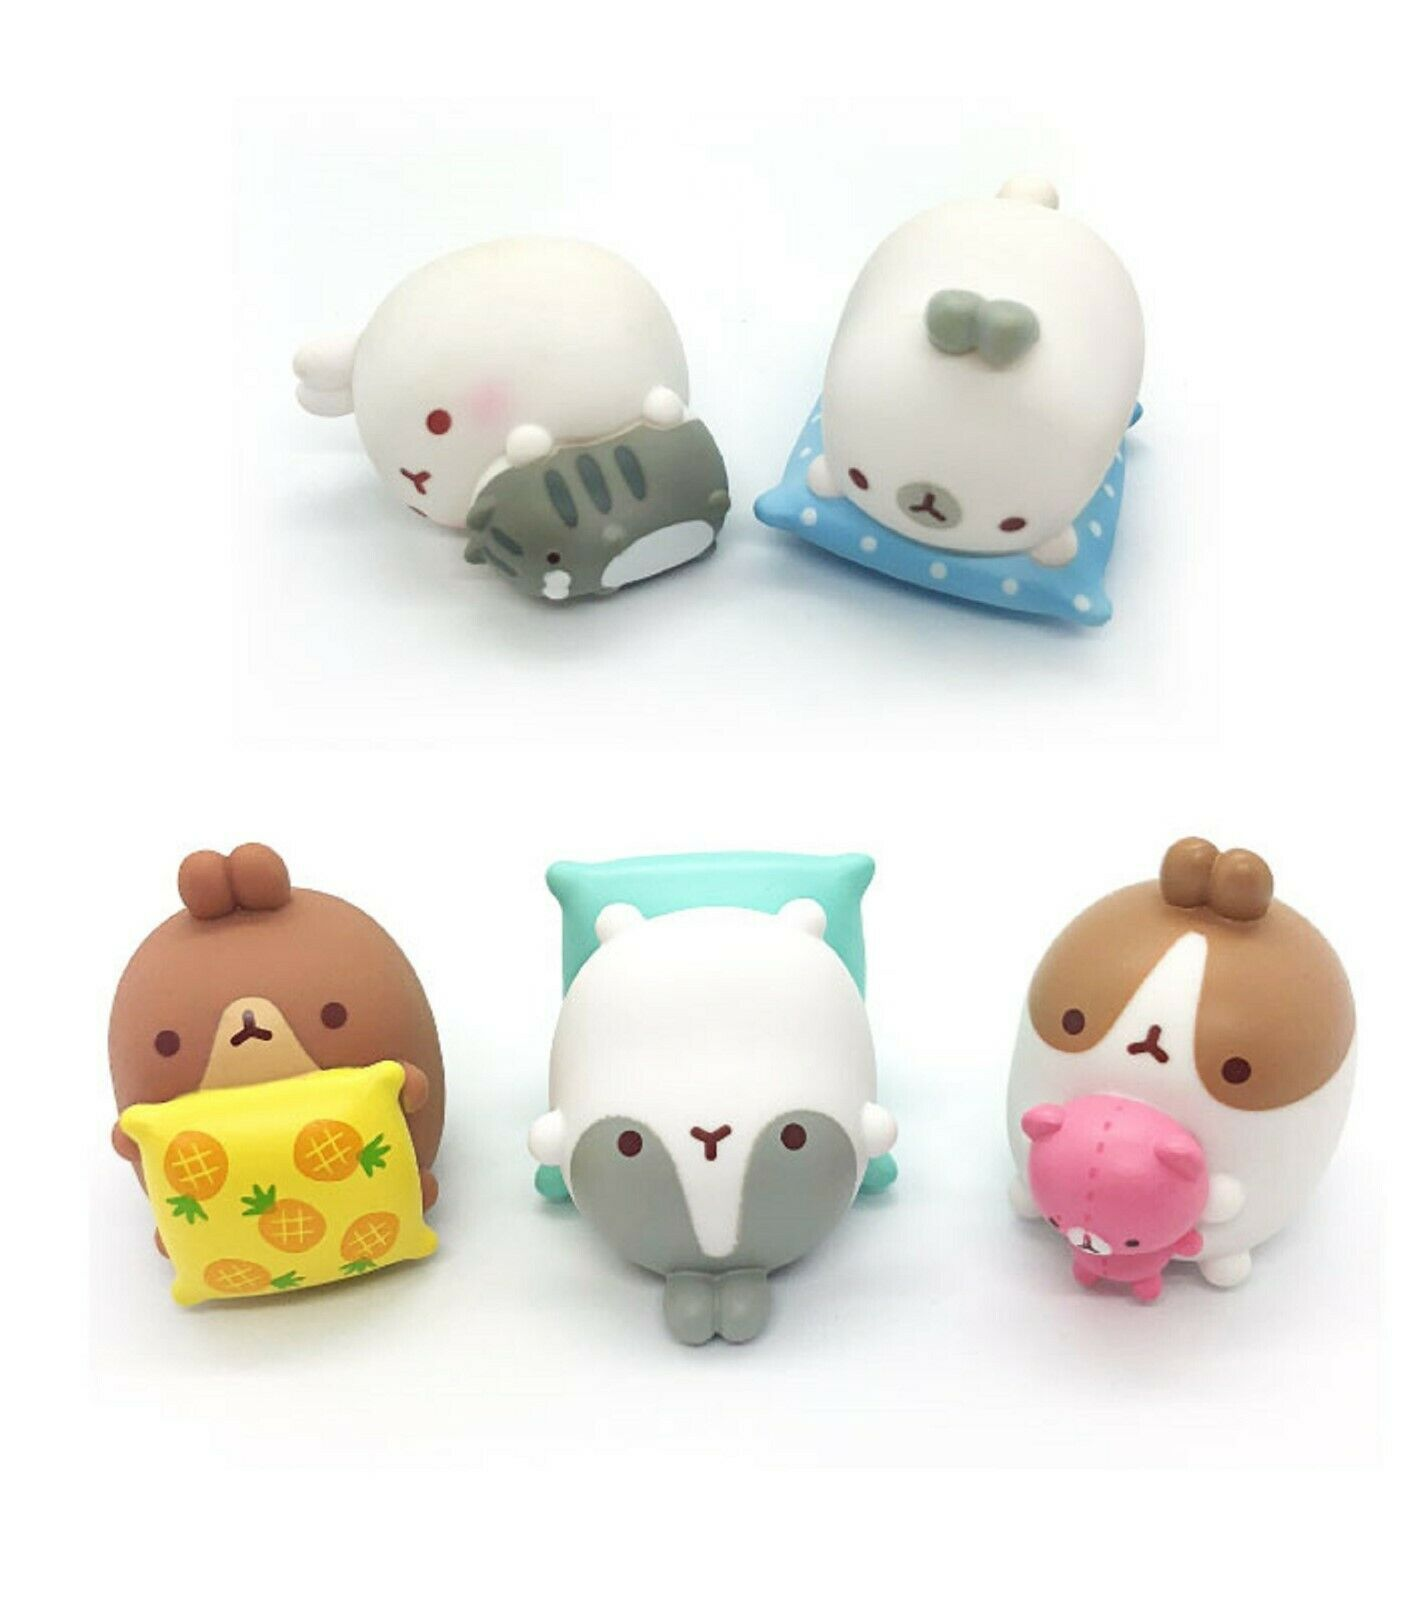 Molang Figures Volume 5 Lazy Sunday Set Figures Figurines Toy Set (5 Counts)